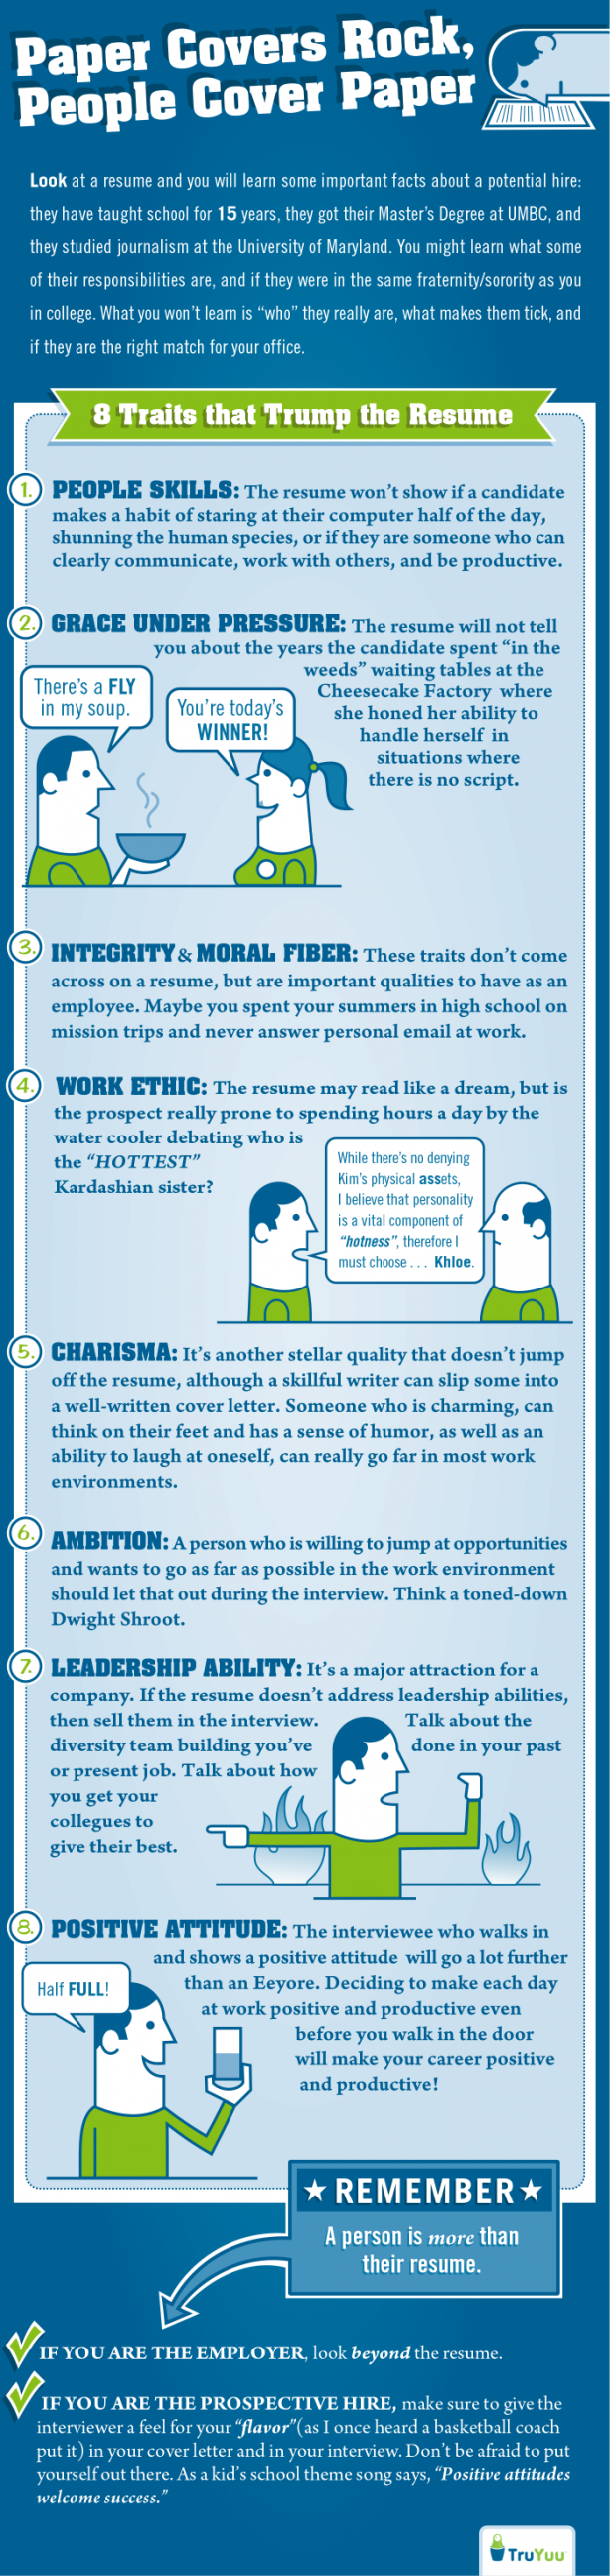 best images about requisite skillsets emotional 17 best images about requisite skillsets emotional intelligence body language and grant writing